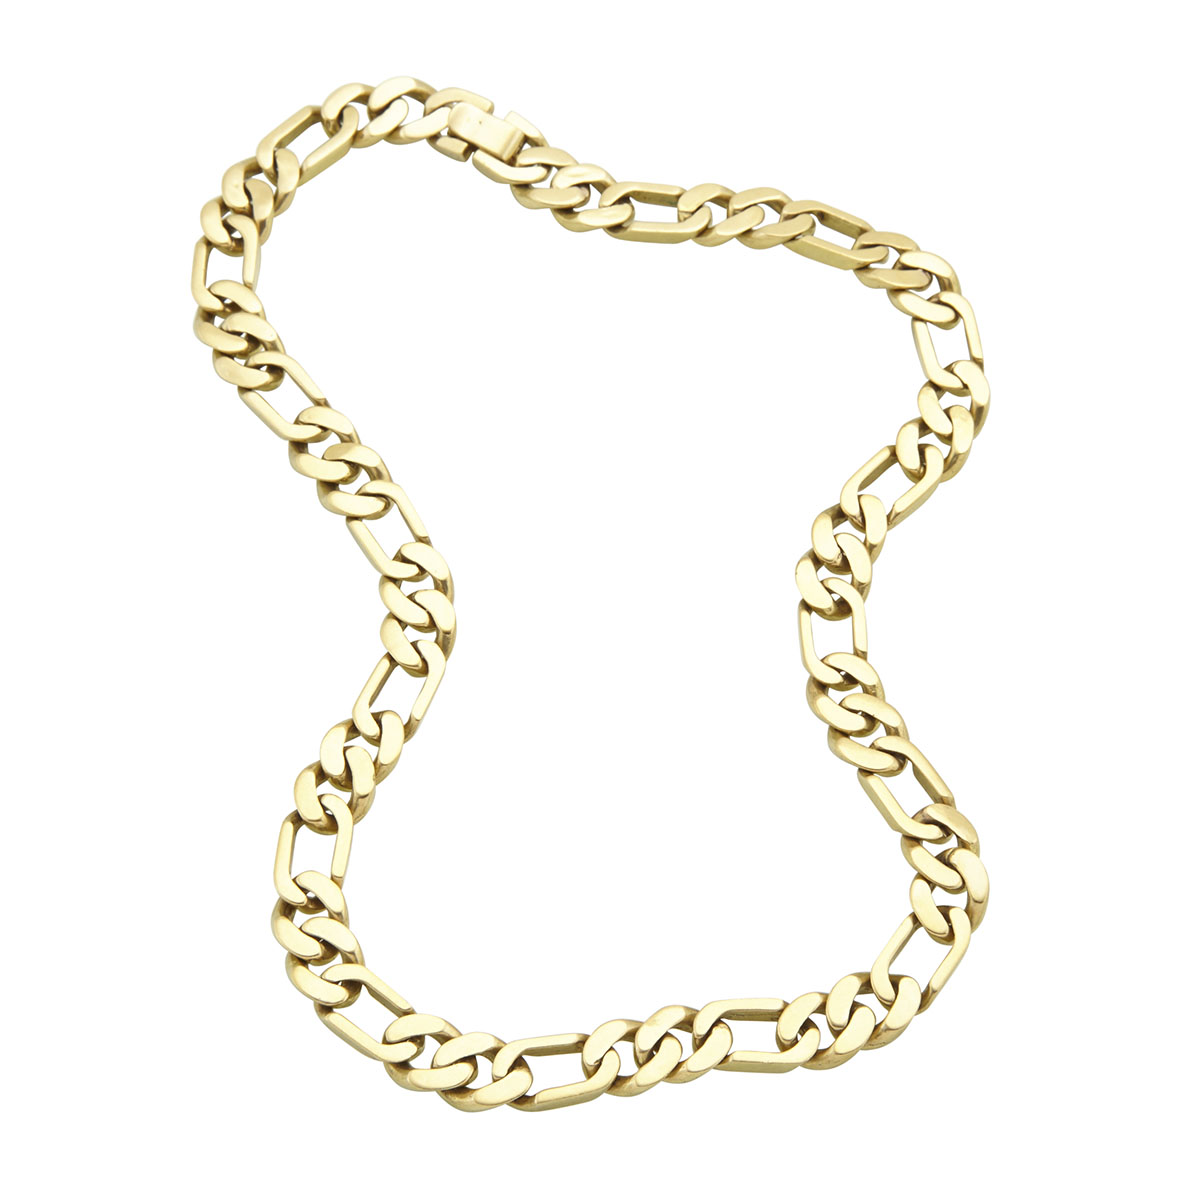 18k Yellow Gold Modified Curb Link Chain